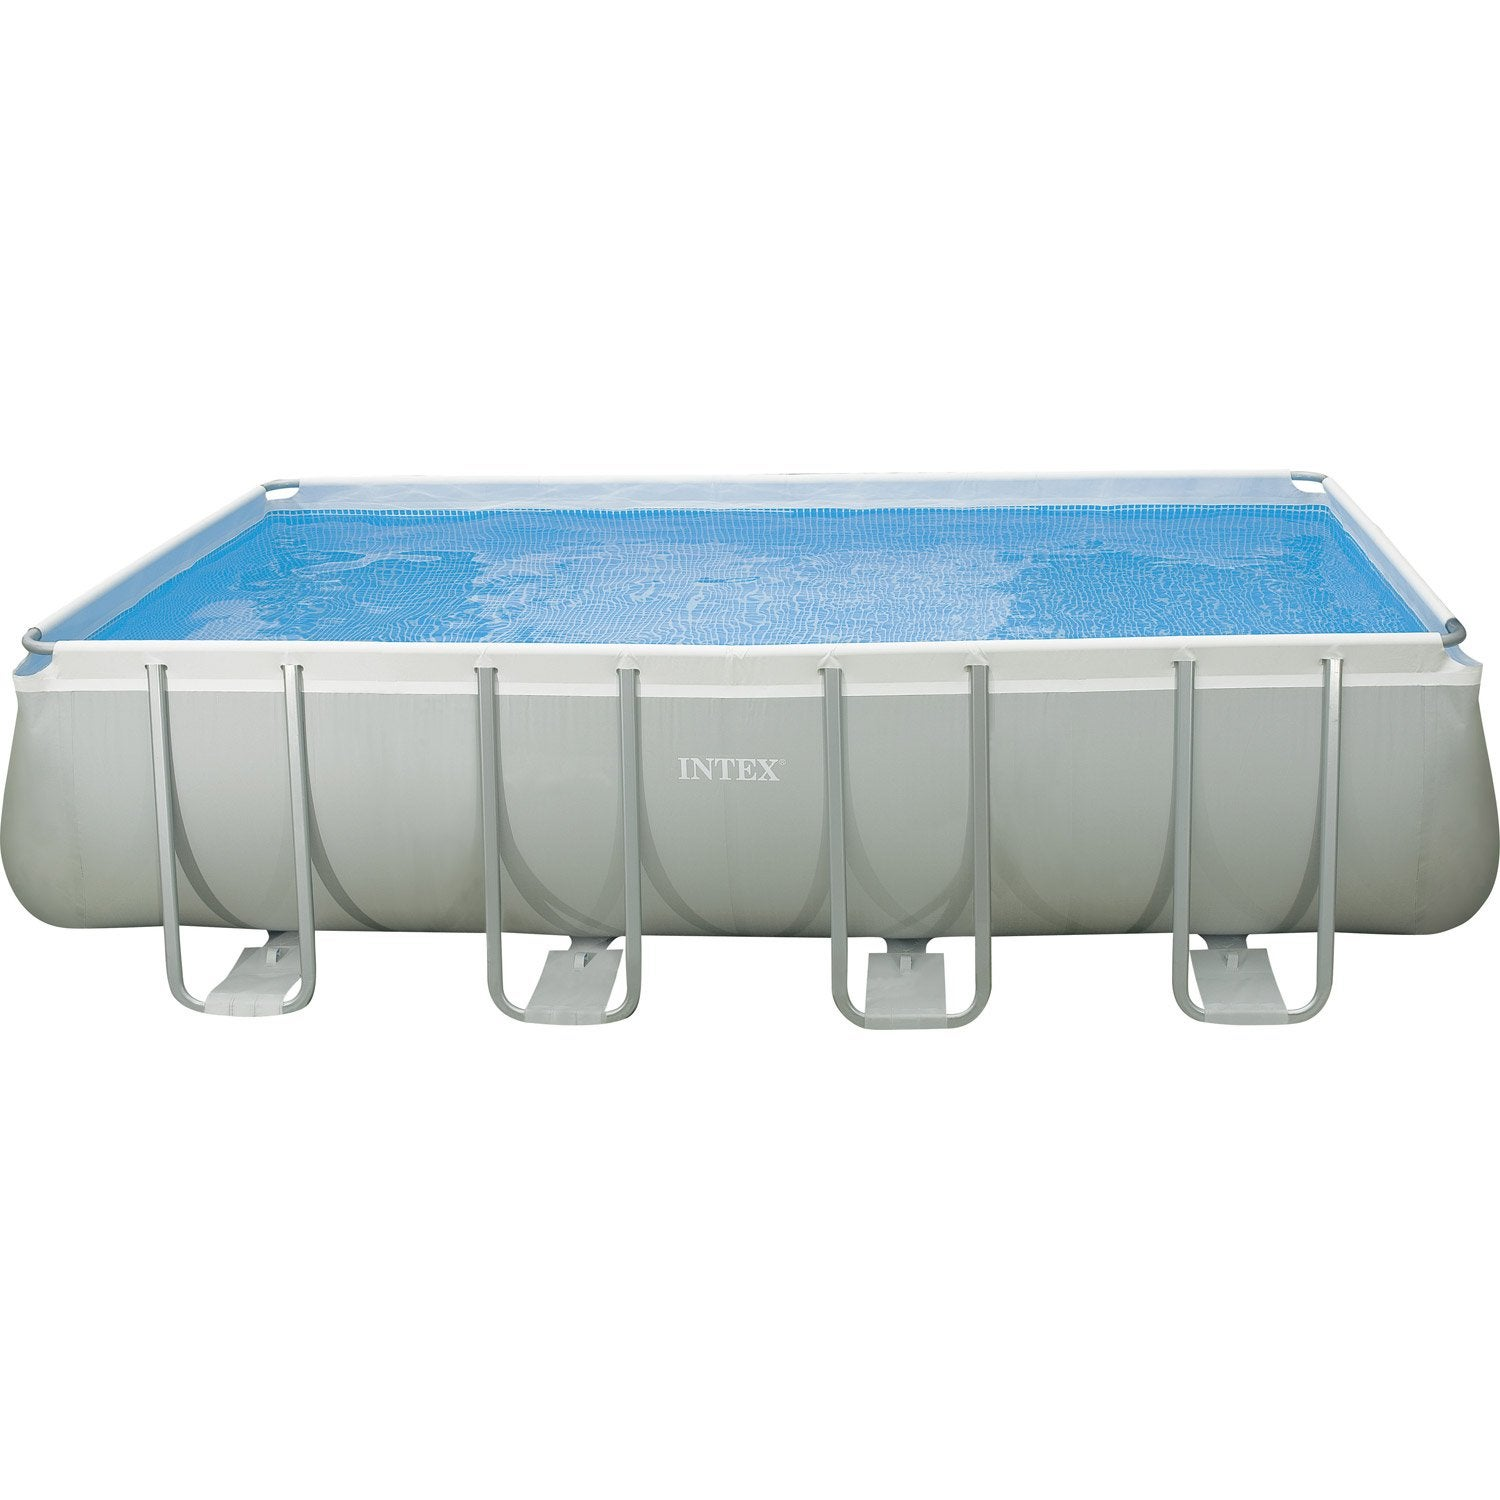 Piscine hors sol autoportante tubulaire intex l x l for Taxe piscine hors sol